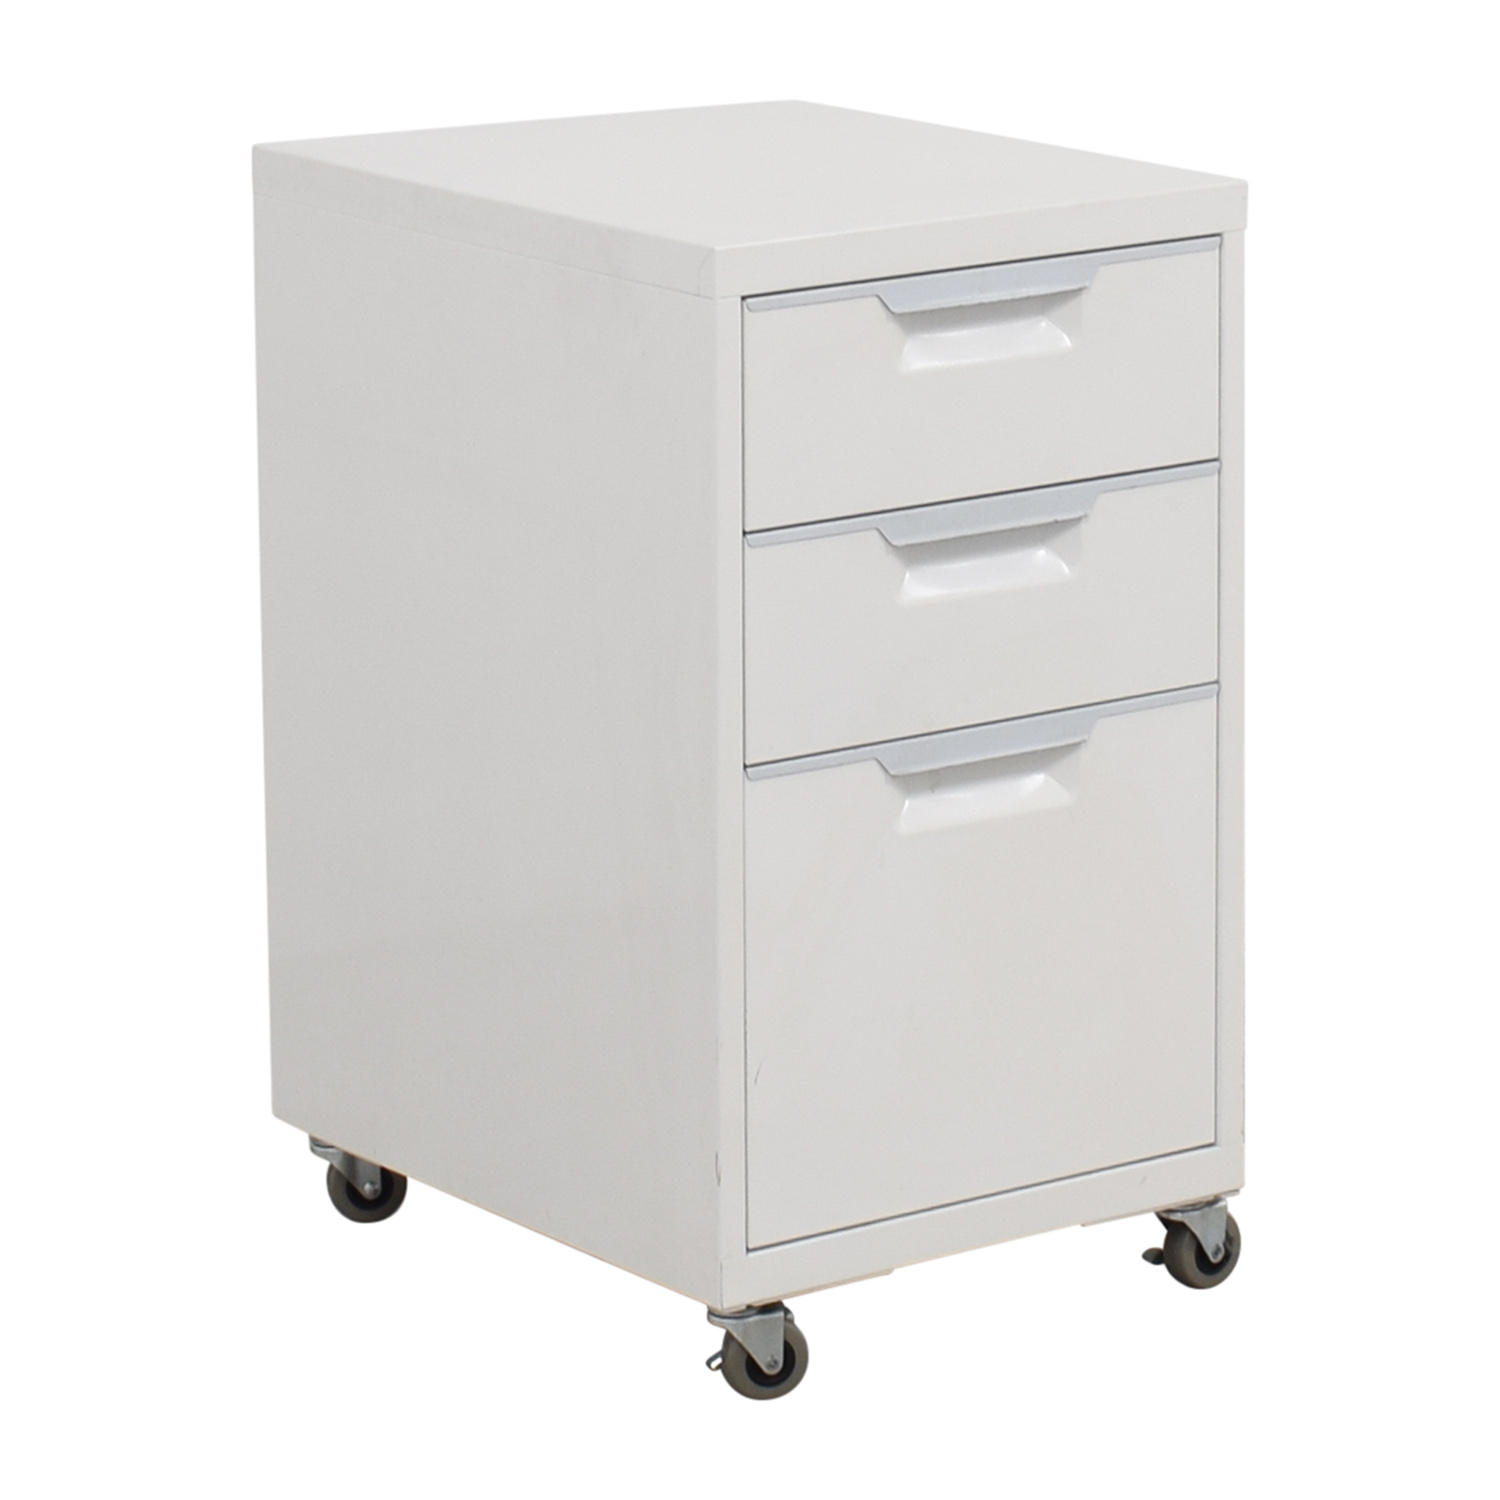 CB2 CB2 TPS White 3-Drawer Filing Cabinet second hand